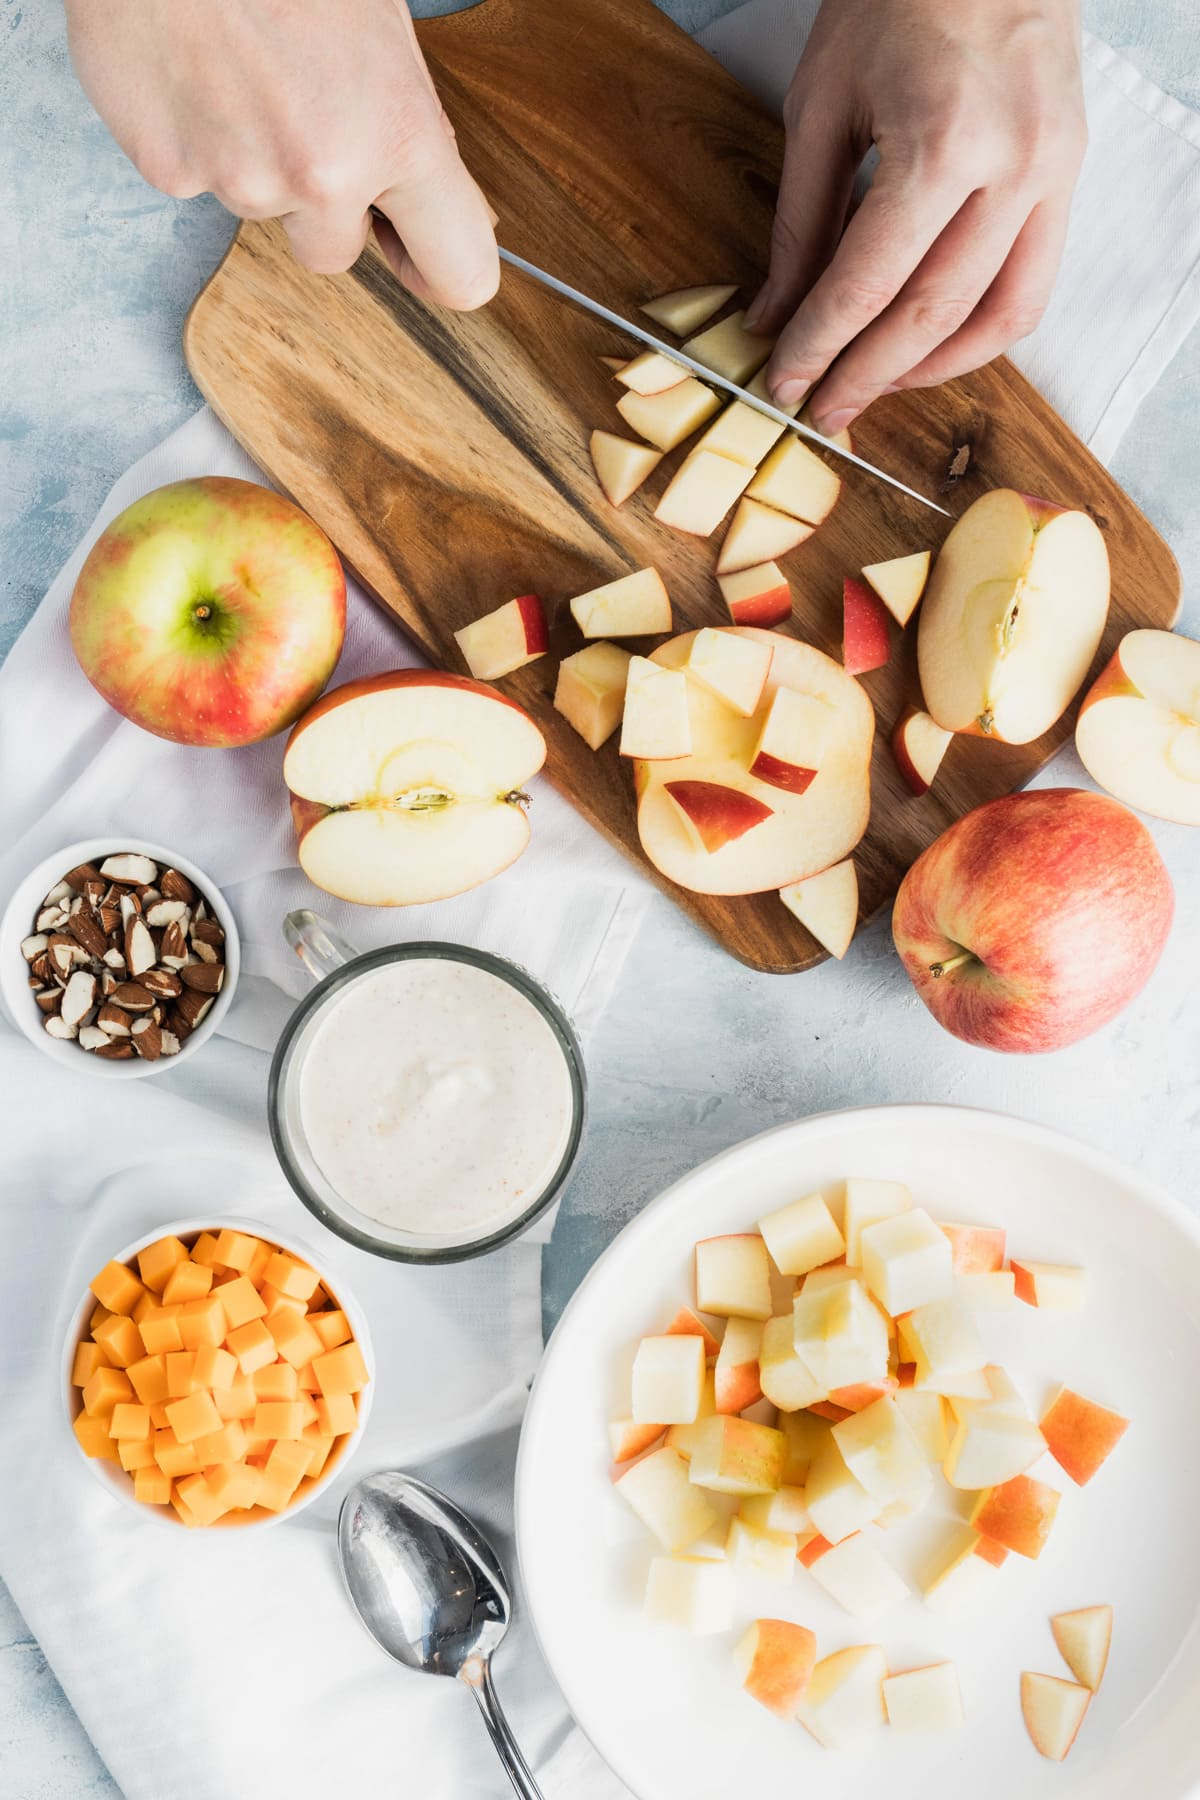 Apple Yogurt Salad Recipe Ingredients